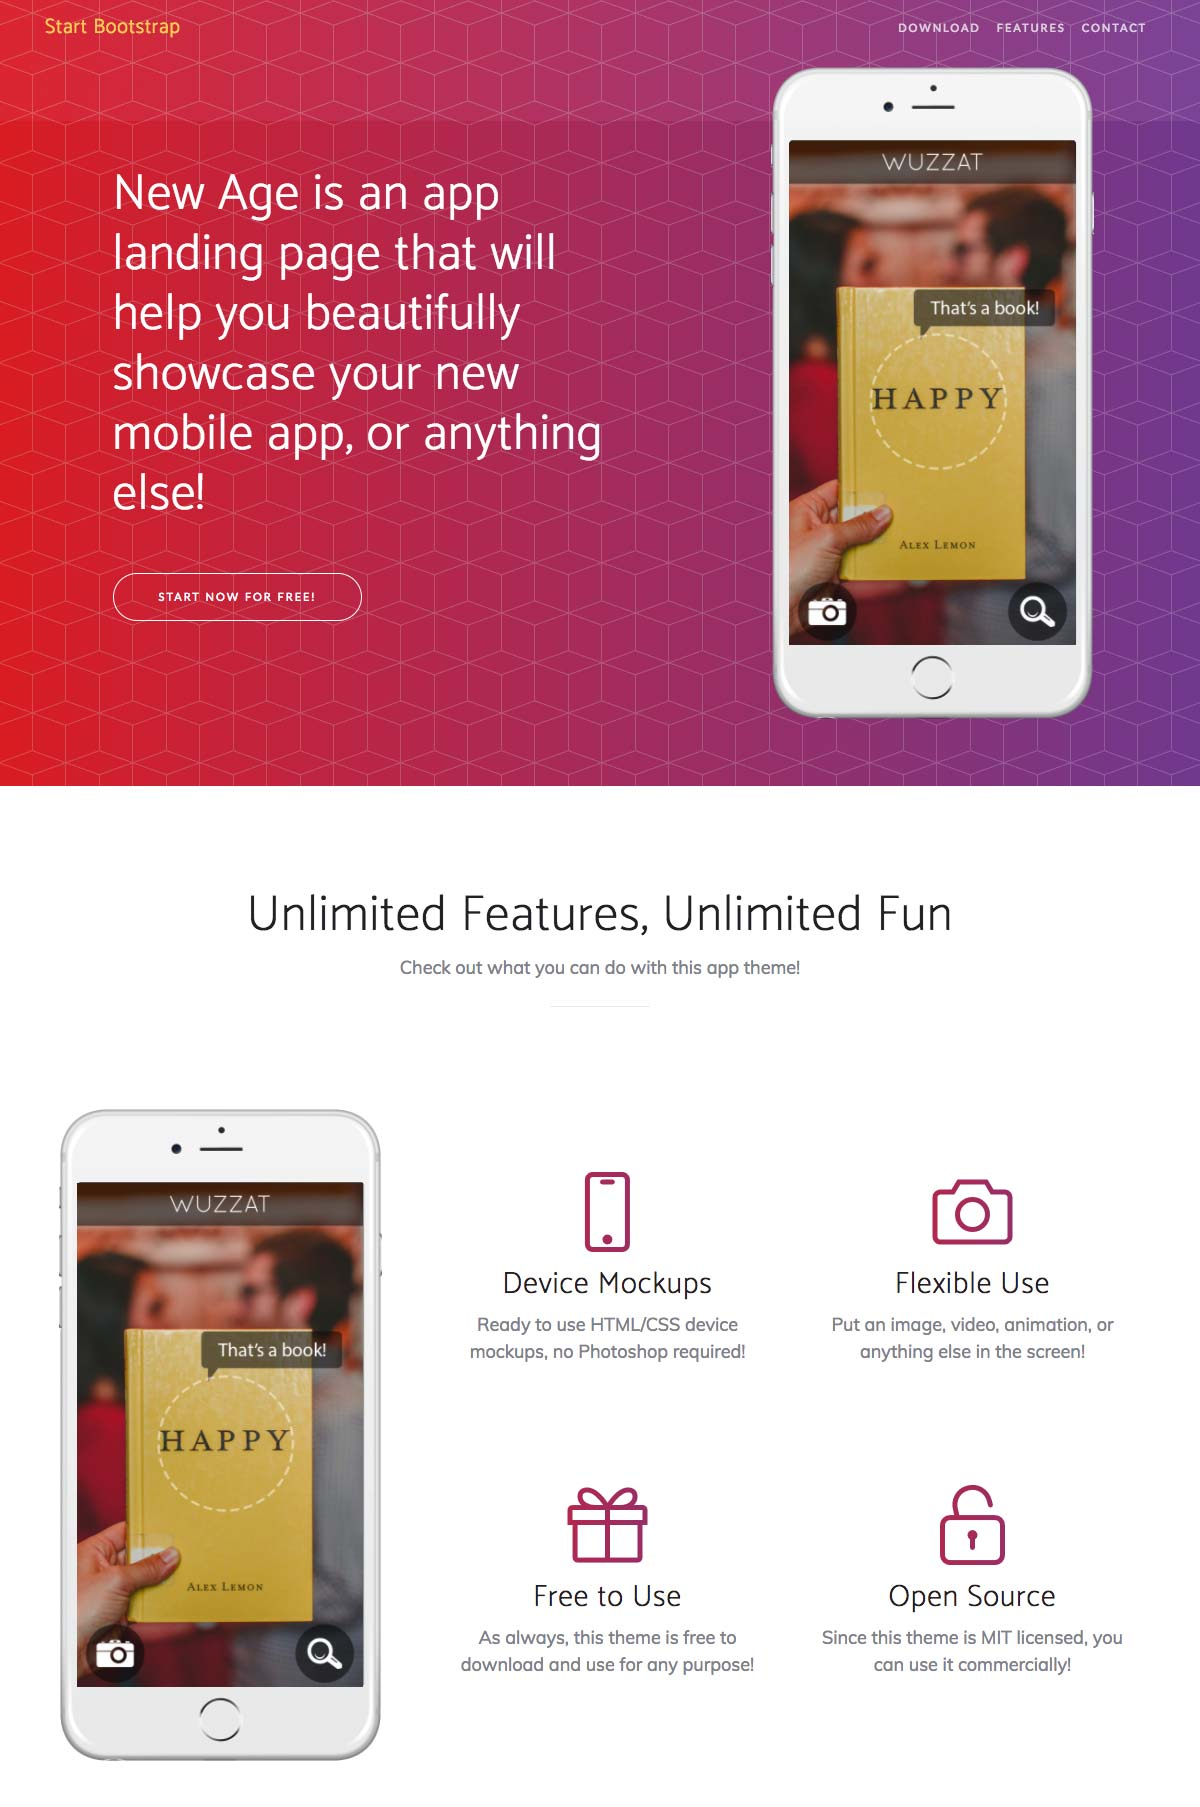 Bootstrap landing page template for mobile app